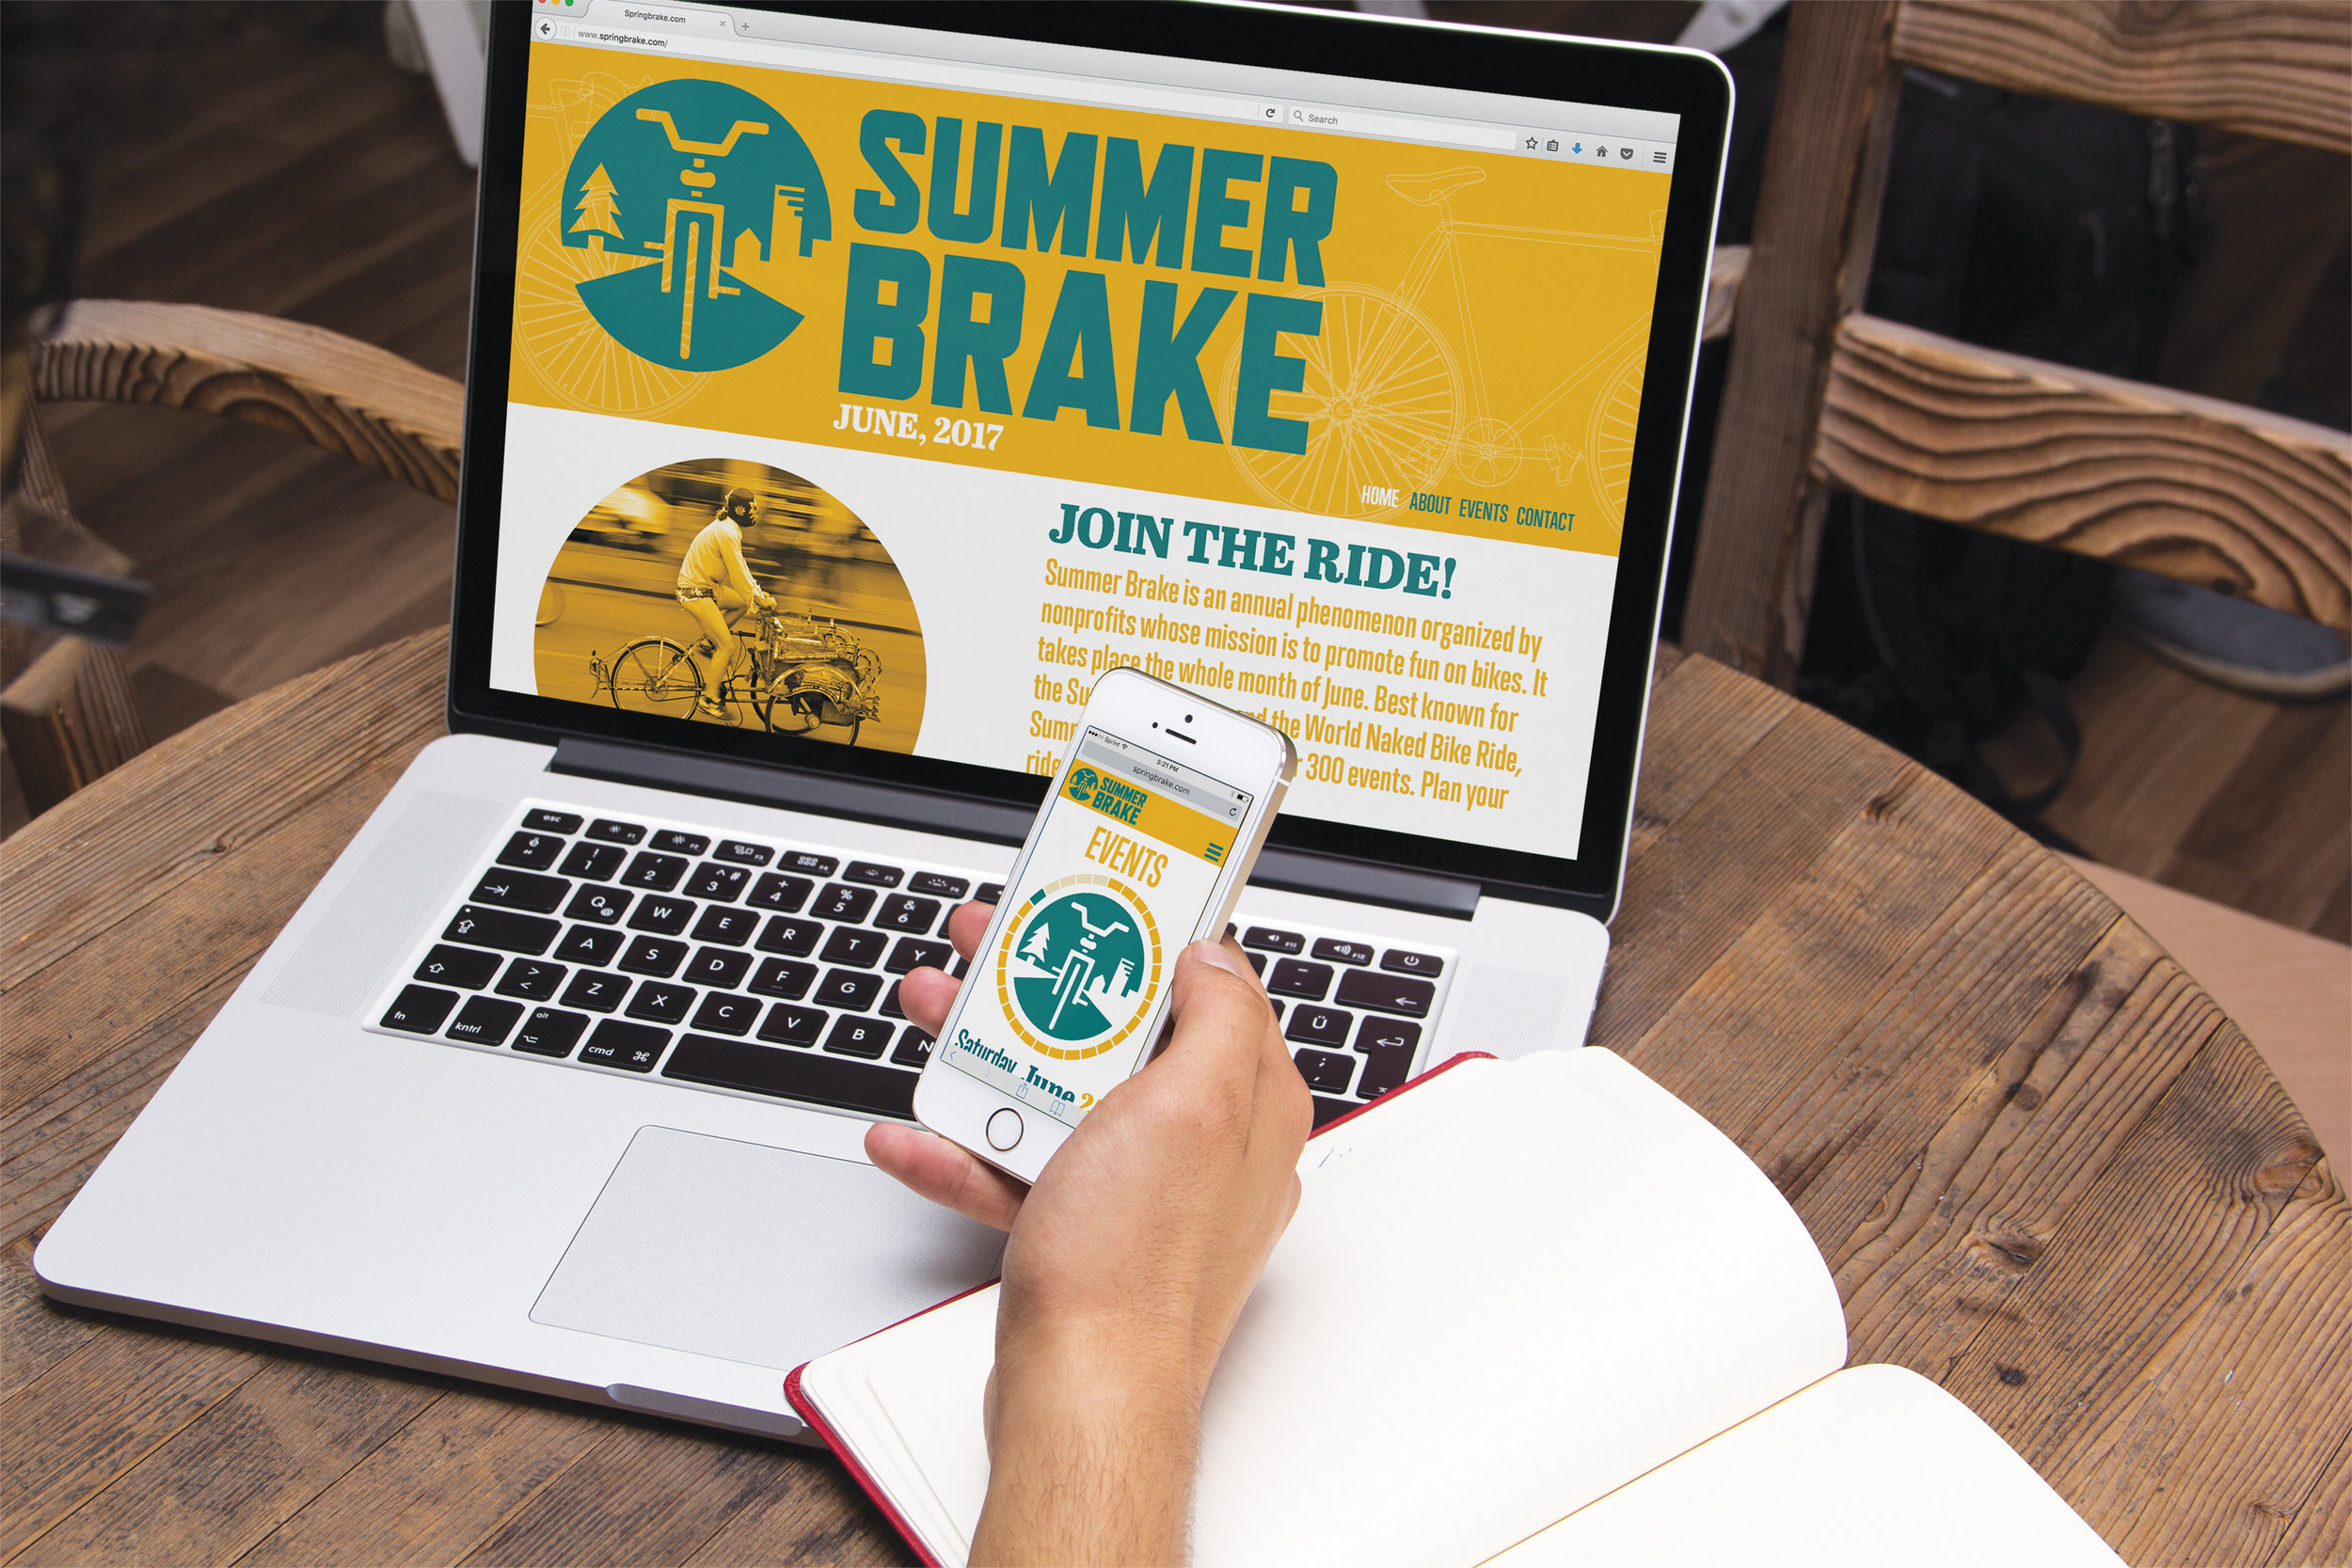 Summer Brake - Annual bicycle celebration for adventurous riders of all ages. A unity of organic grit with polished elements reflects Portland's mix of nature within the city.